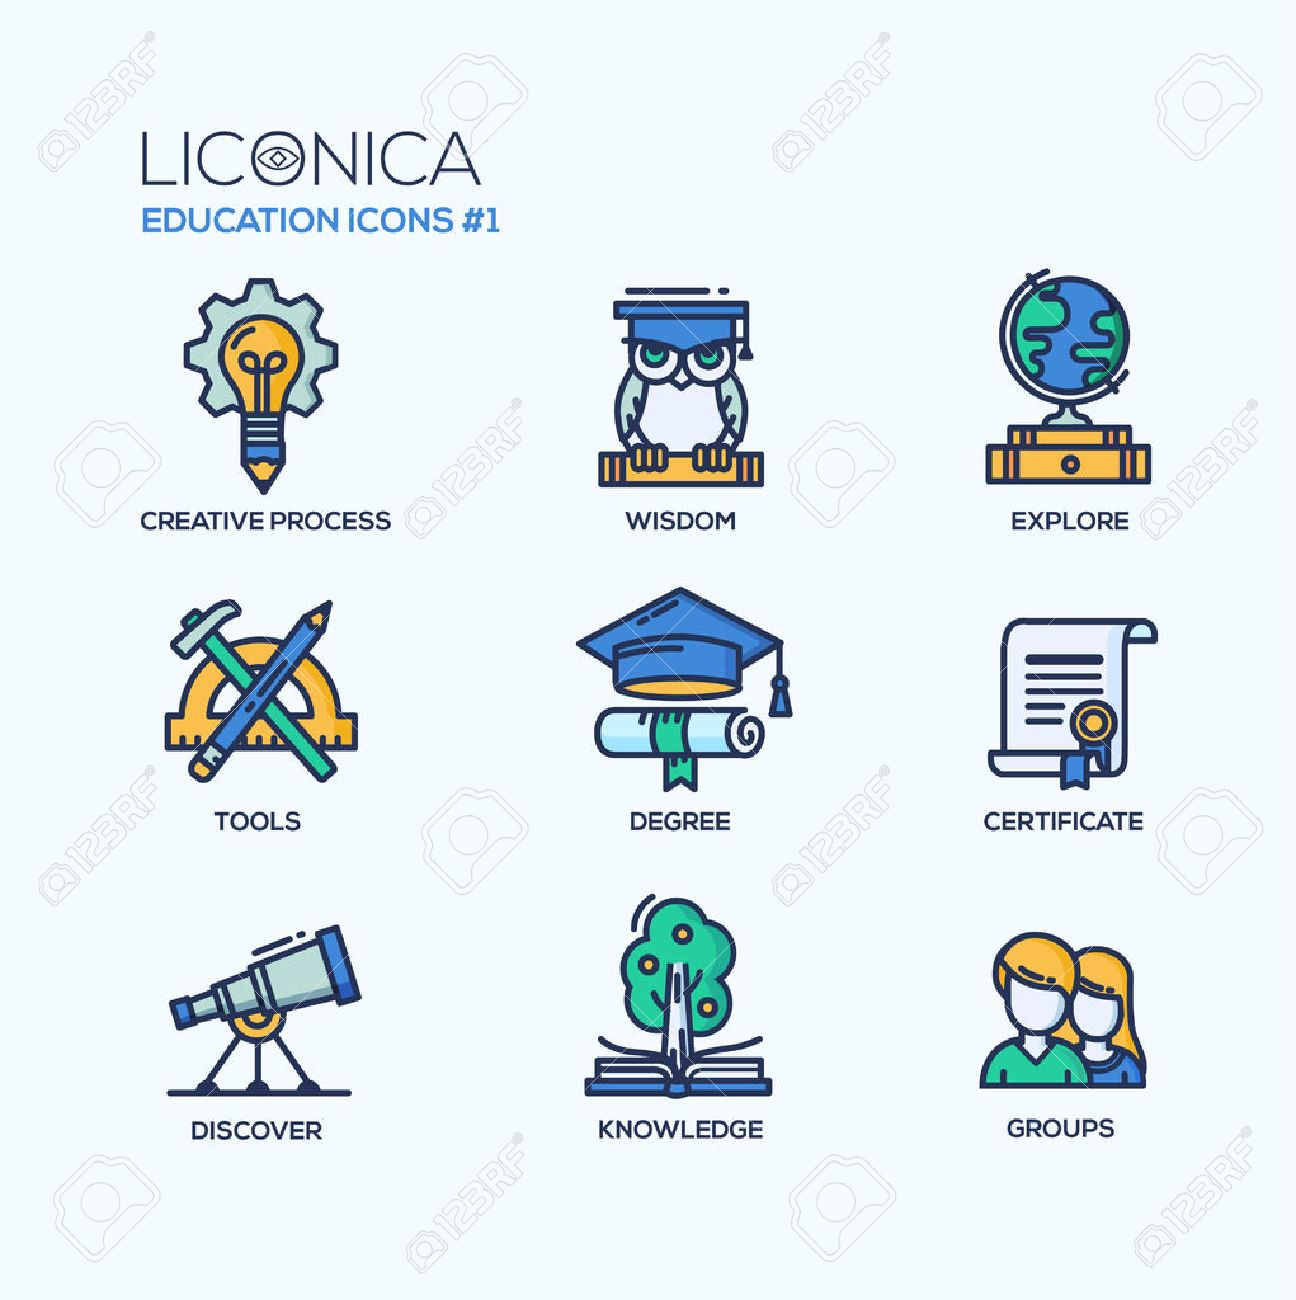 Set of modern vector education thin line flat design icons and pictograms. Collection of education infographics objects and web elements. Creative process, wisdom, explore, tools, degree, certificate, discover, knowledge, groups. - 51636047